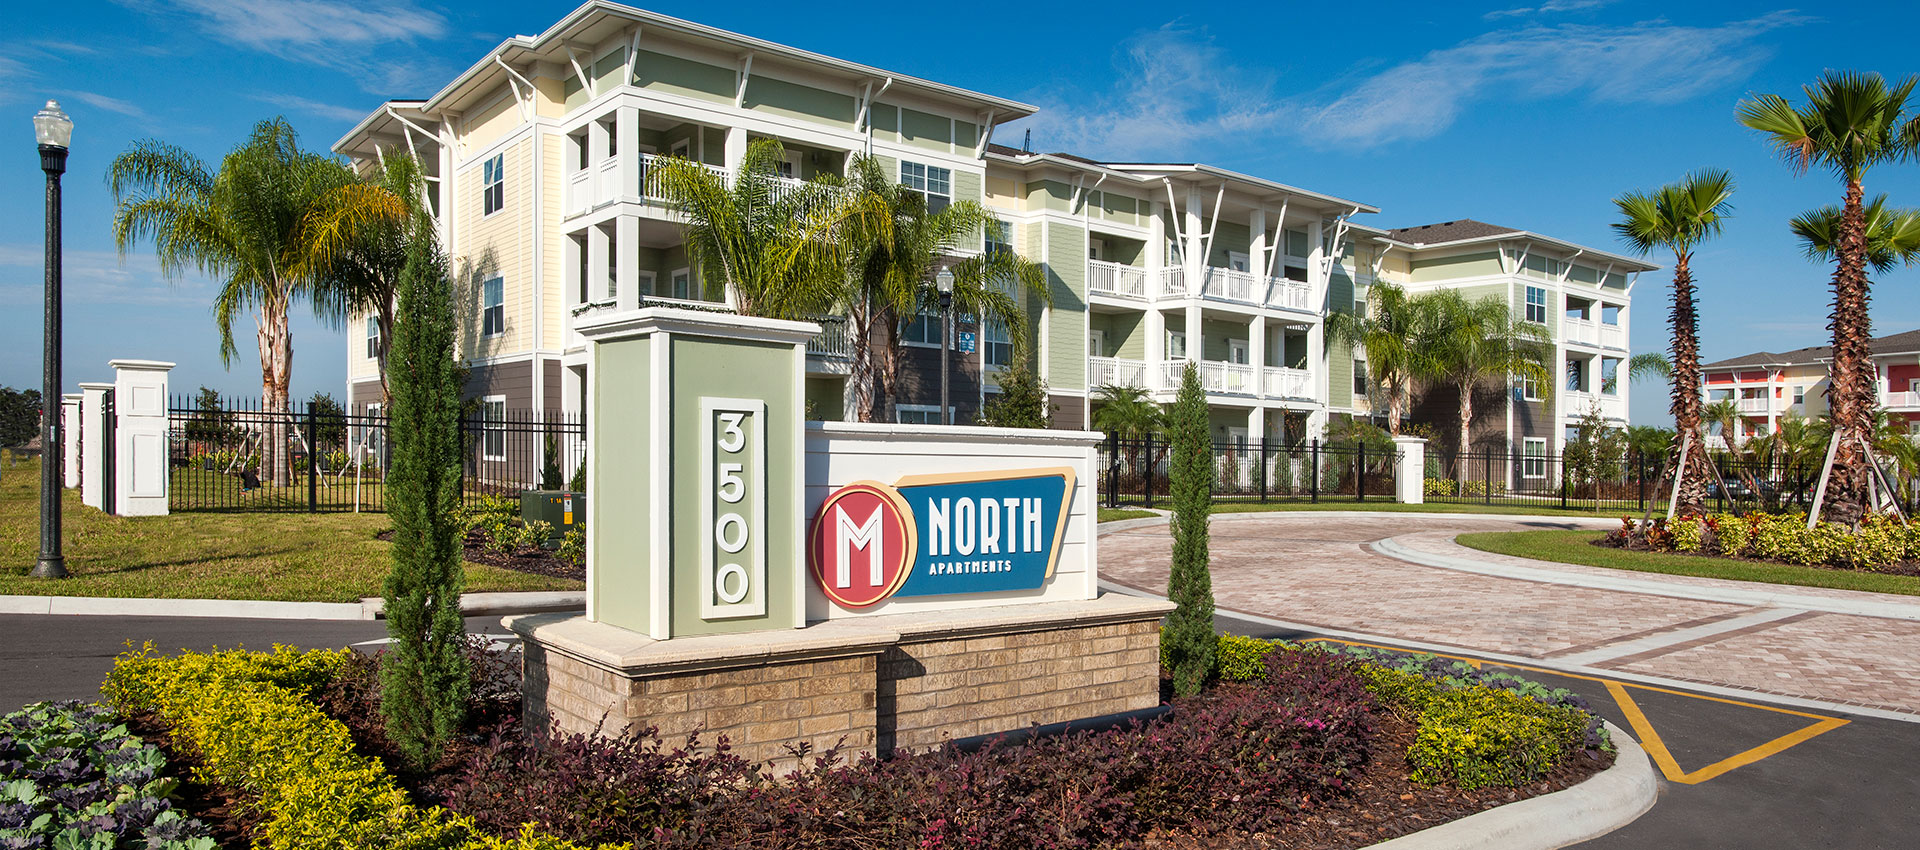 m north apartments apartments for rent in orlando fl